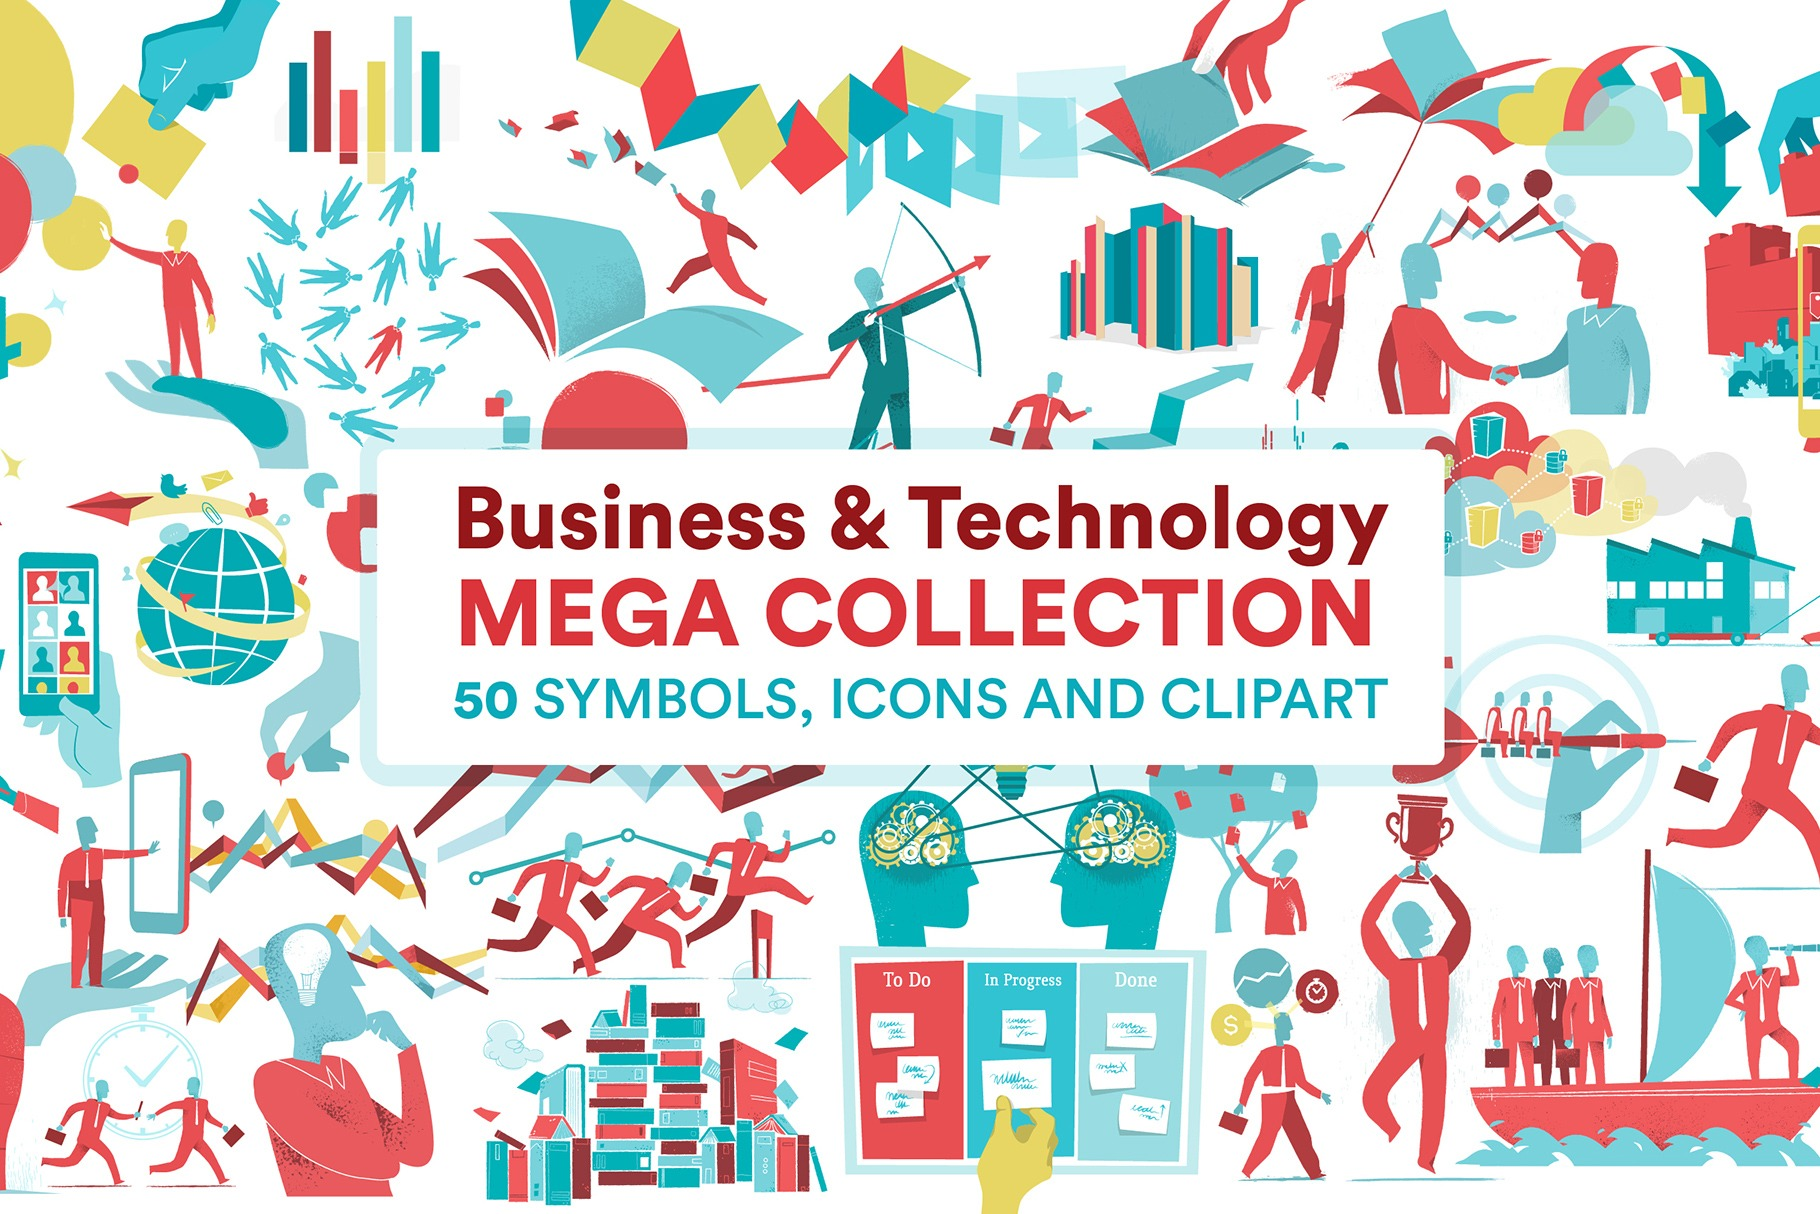 Business & Technology Mega Collection